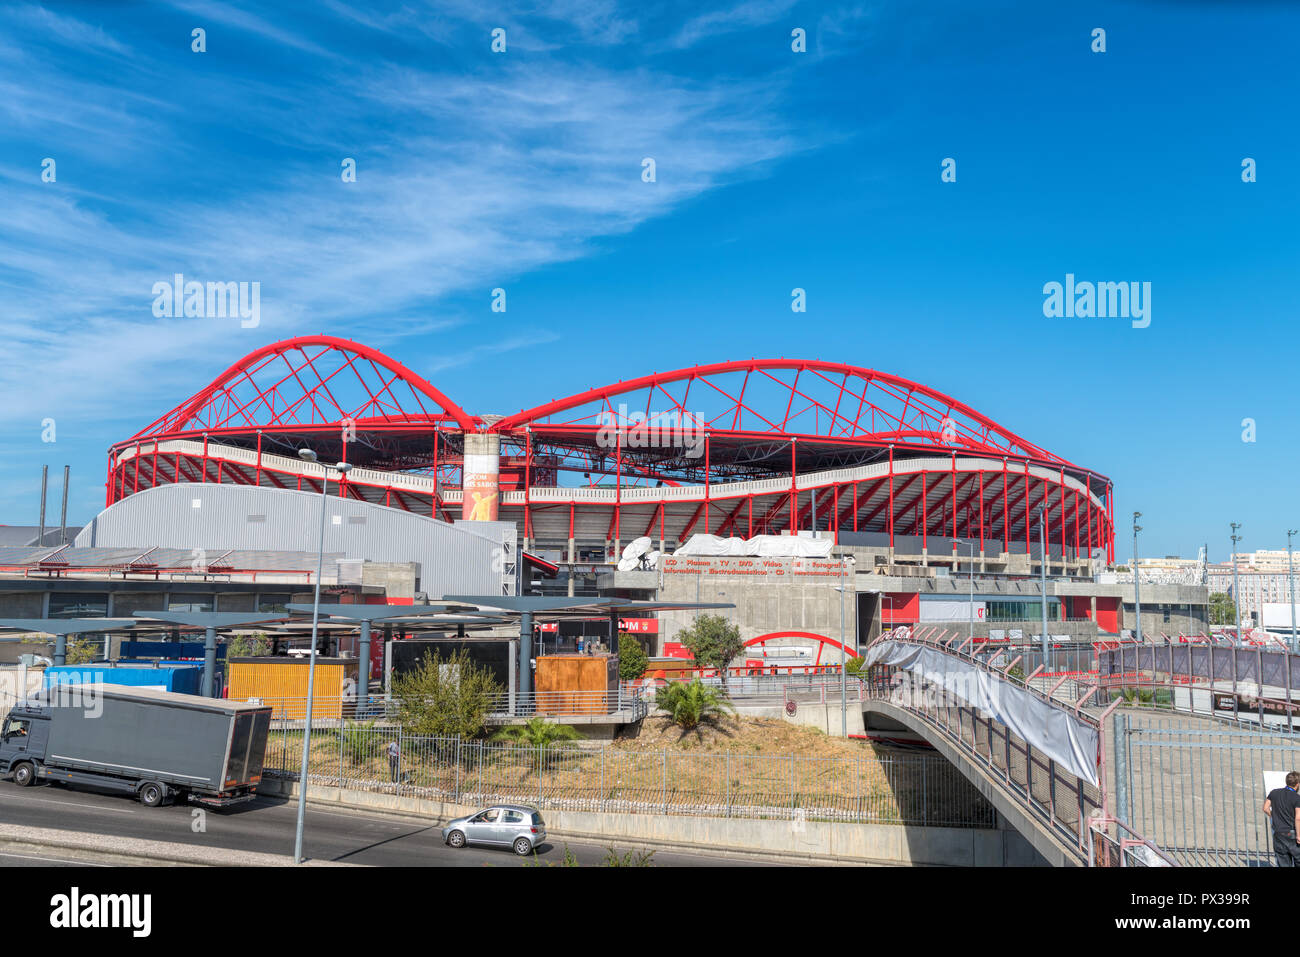 Arte Cafe Benfica Lisbon Club Stock Photos Lisbon Club Stock Images Alamy